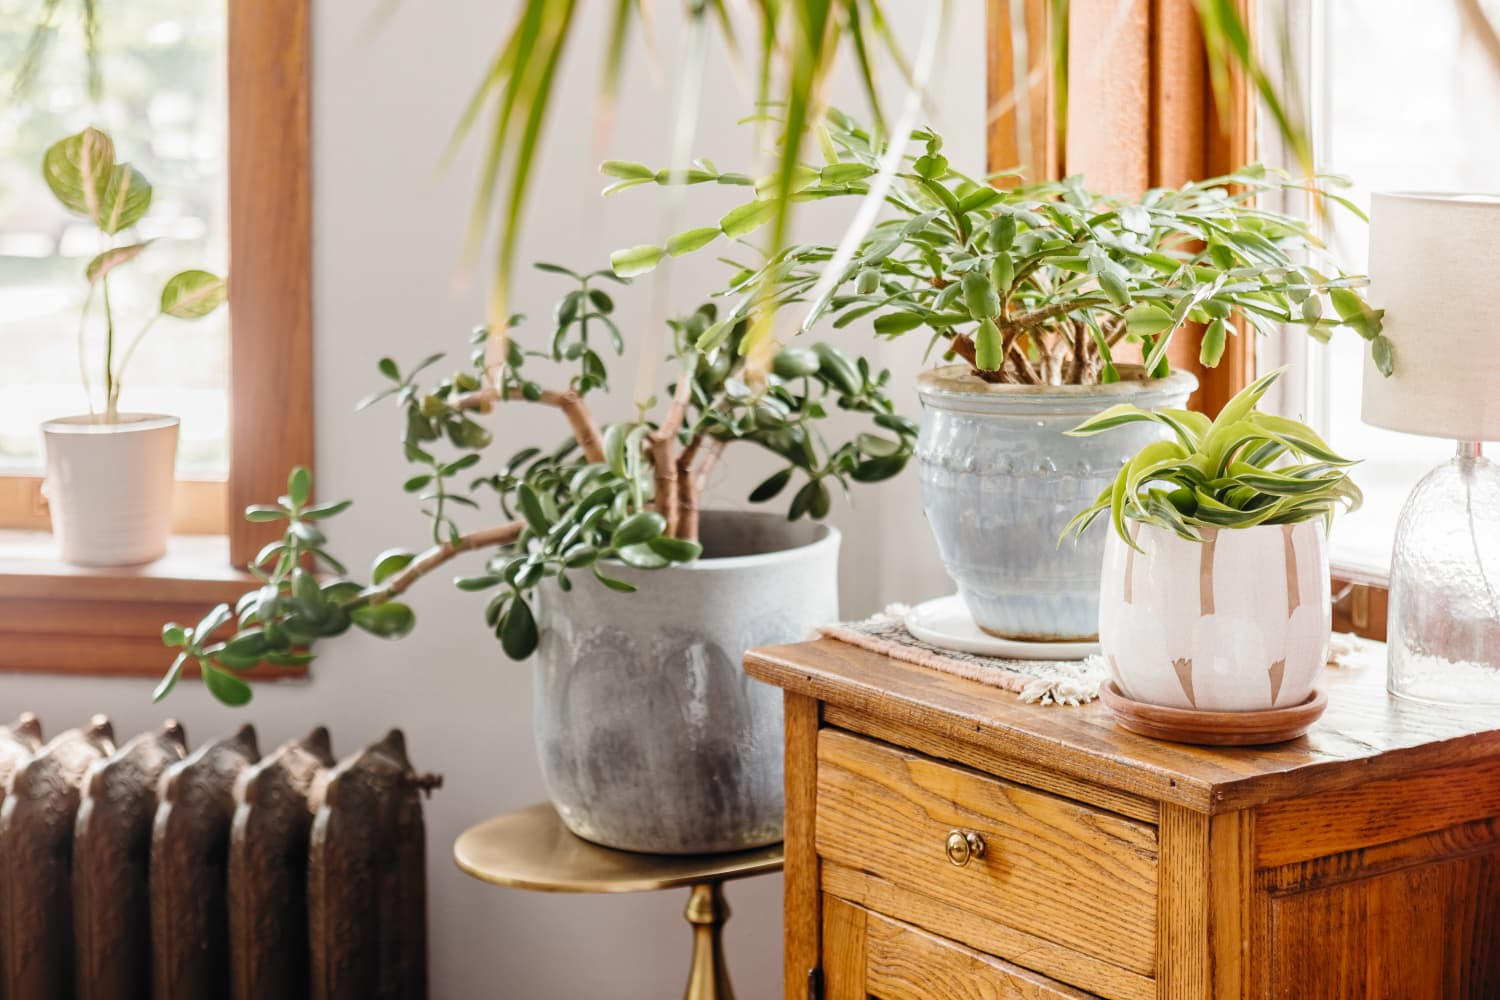 Attention Plant Lovers: We Found a Cheap $2 Alternative to Potting Rocks